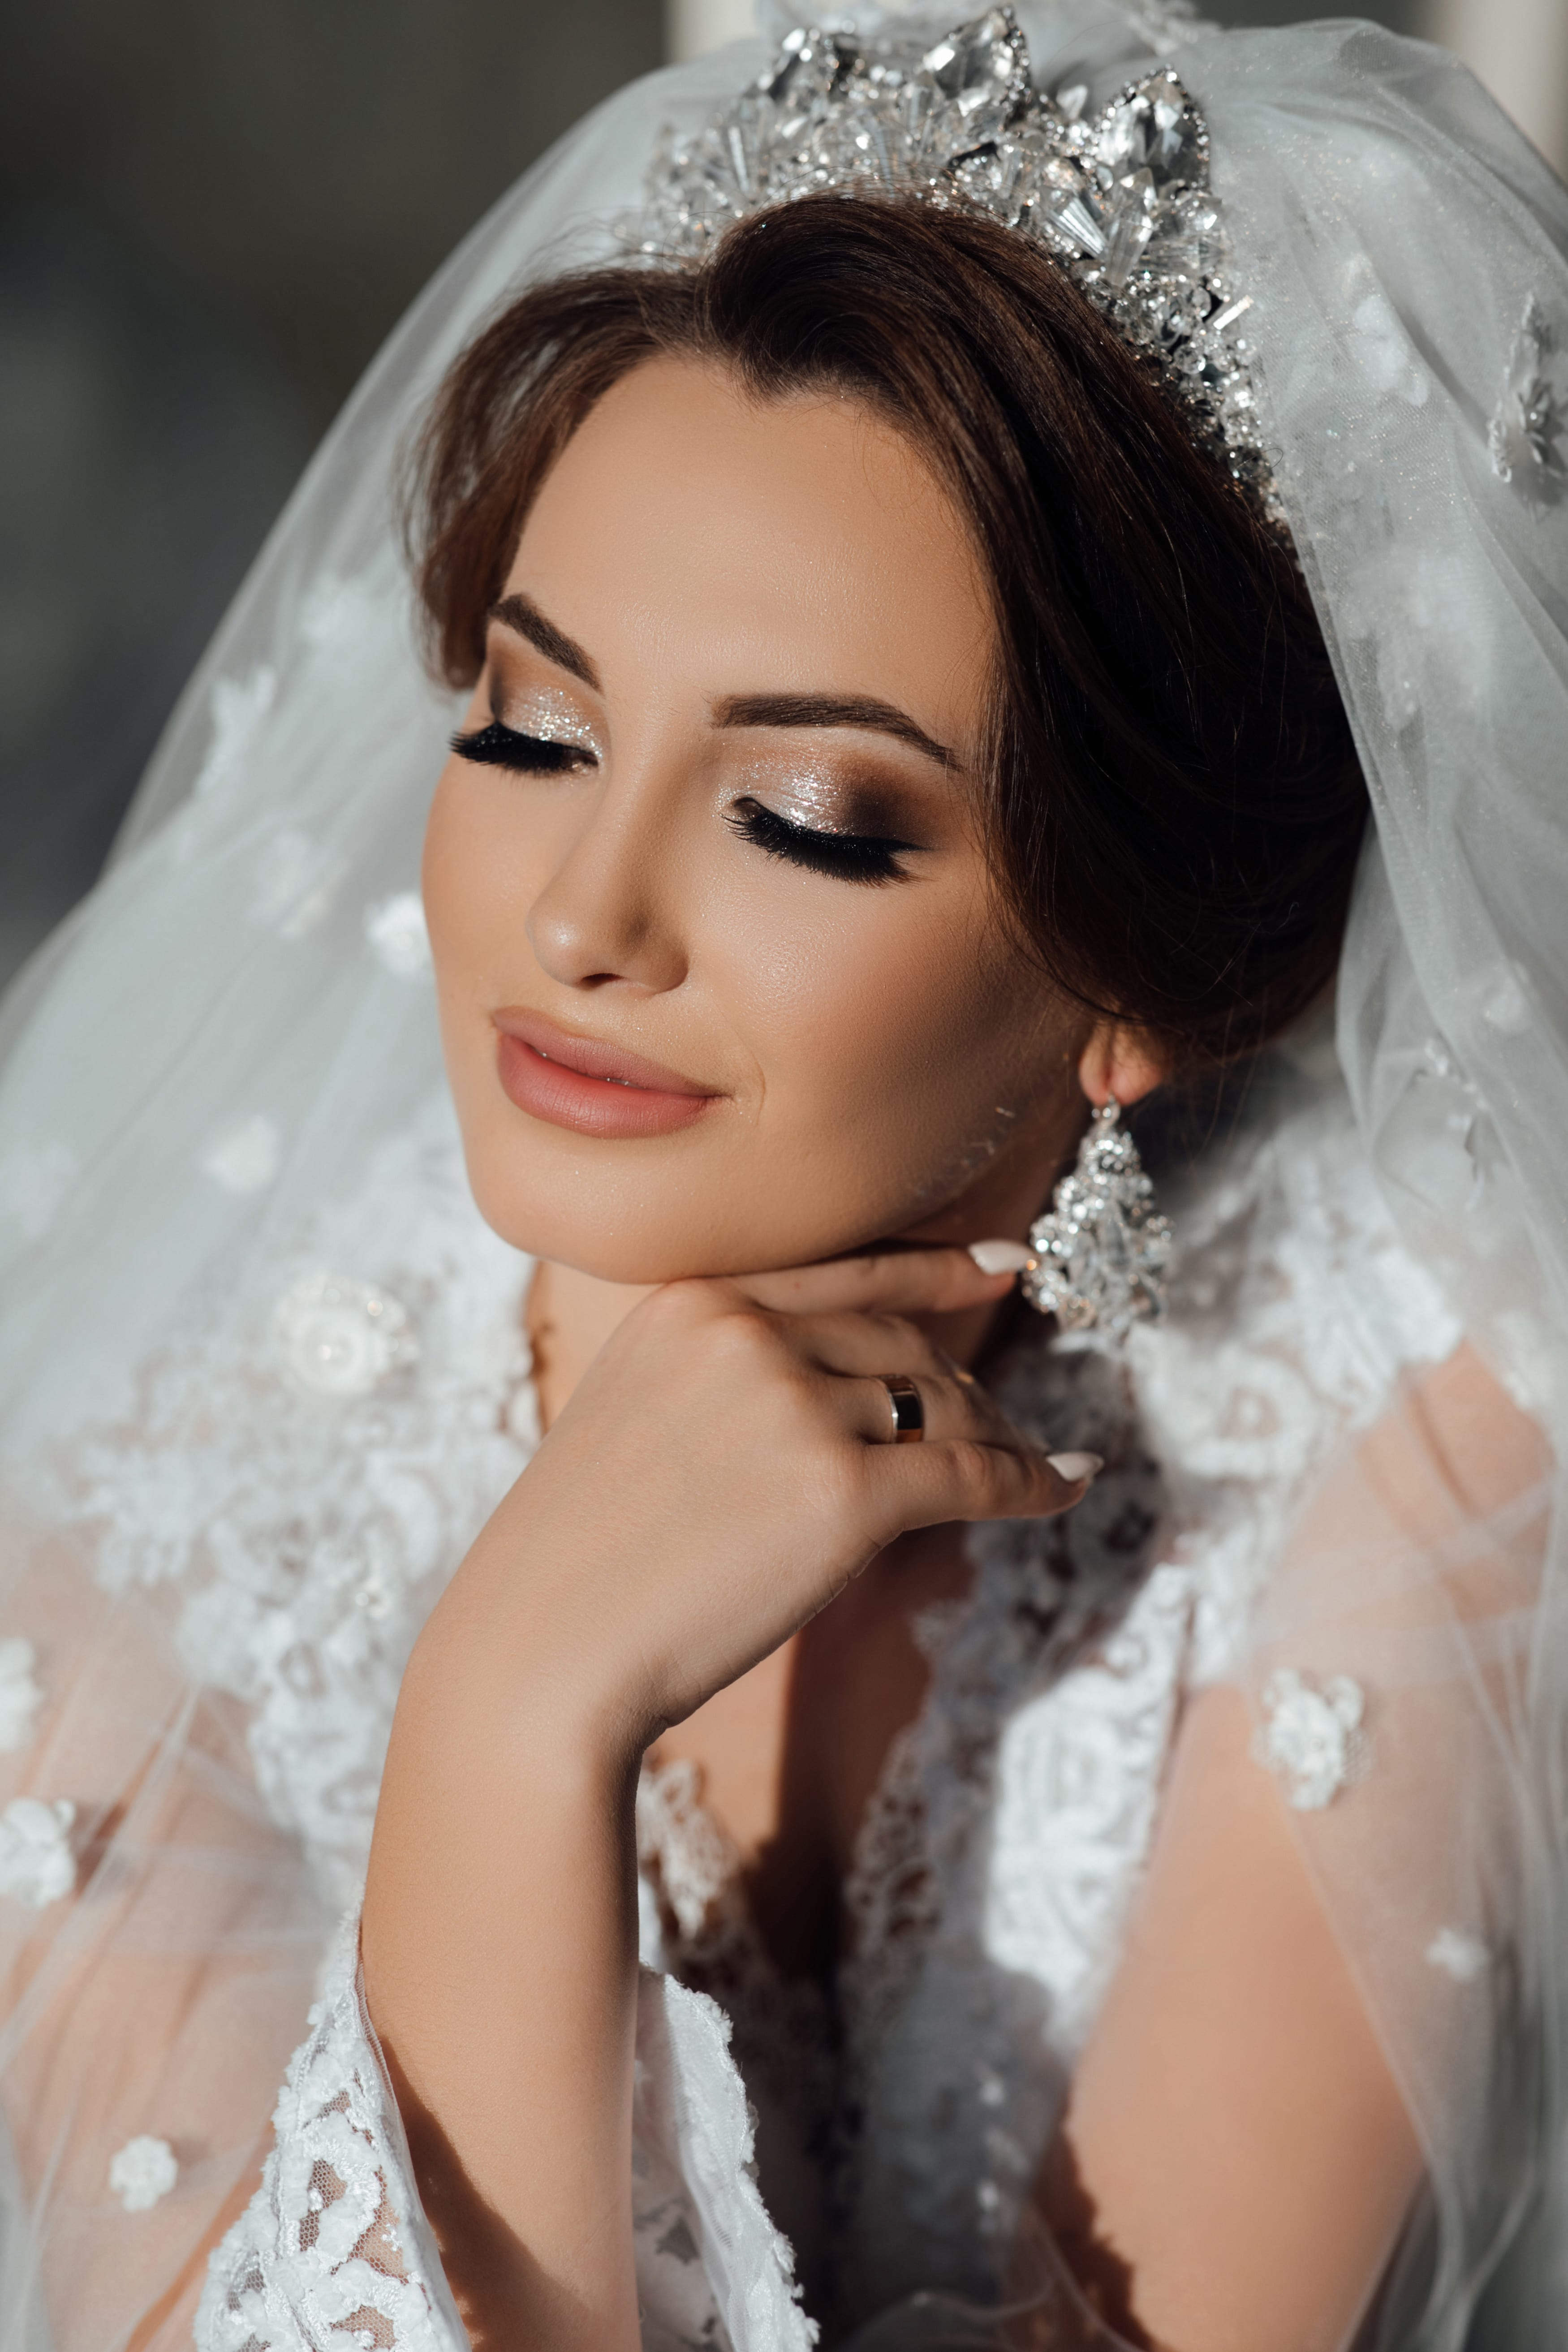 Bride wedding morning. Fashion bride gorgeous beauty, bride woman in robe. Bride touches earrings. Portrait wedding makeup and hairstyle, girl with veil and jewelry at home.